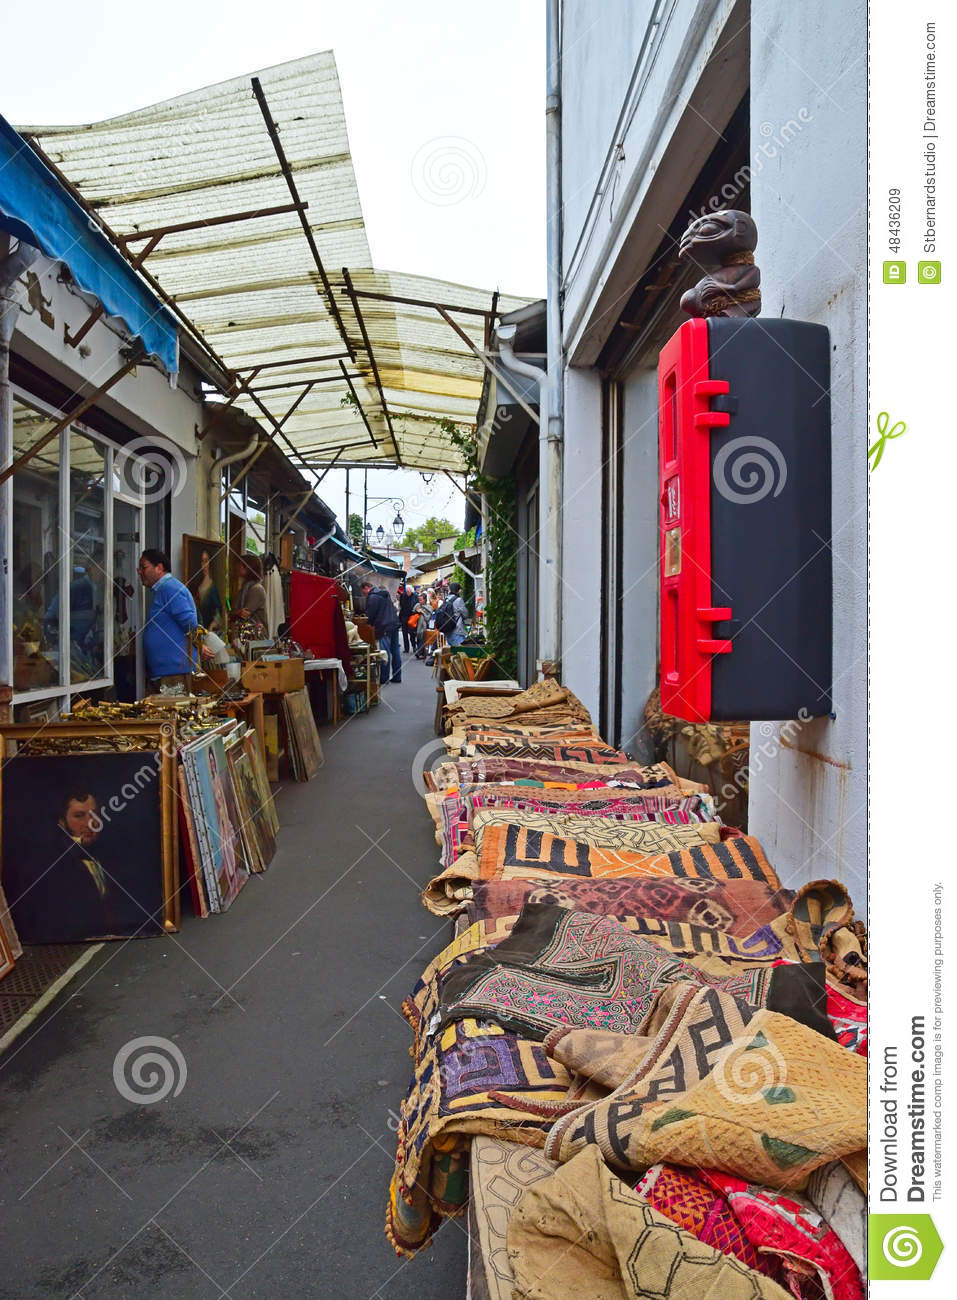 a typical alley sight of marche aux puces de saint ouen paris france editorial stock image. Black Bedroom Furniture Sets. Home Design Ideas